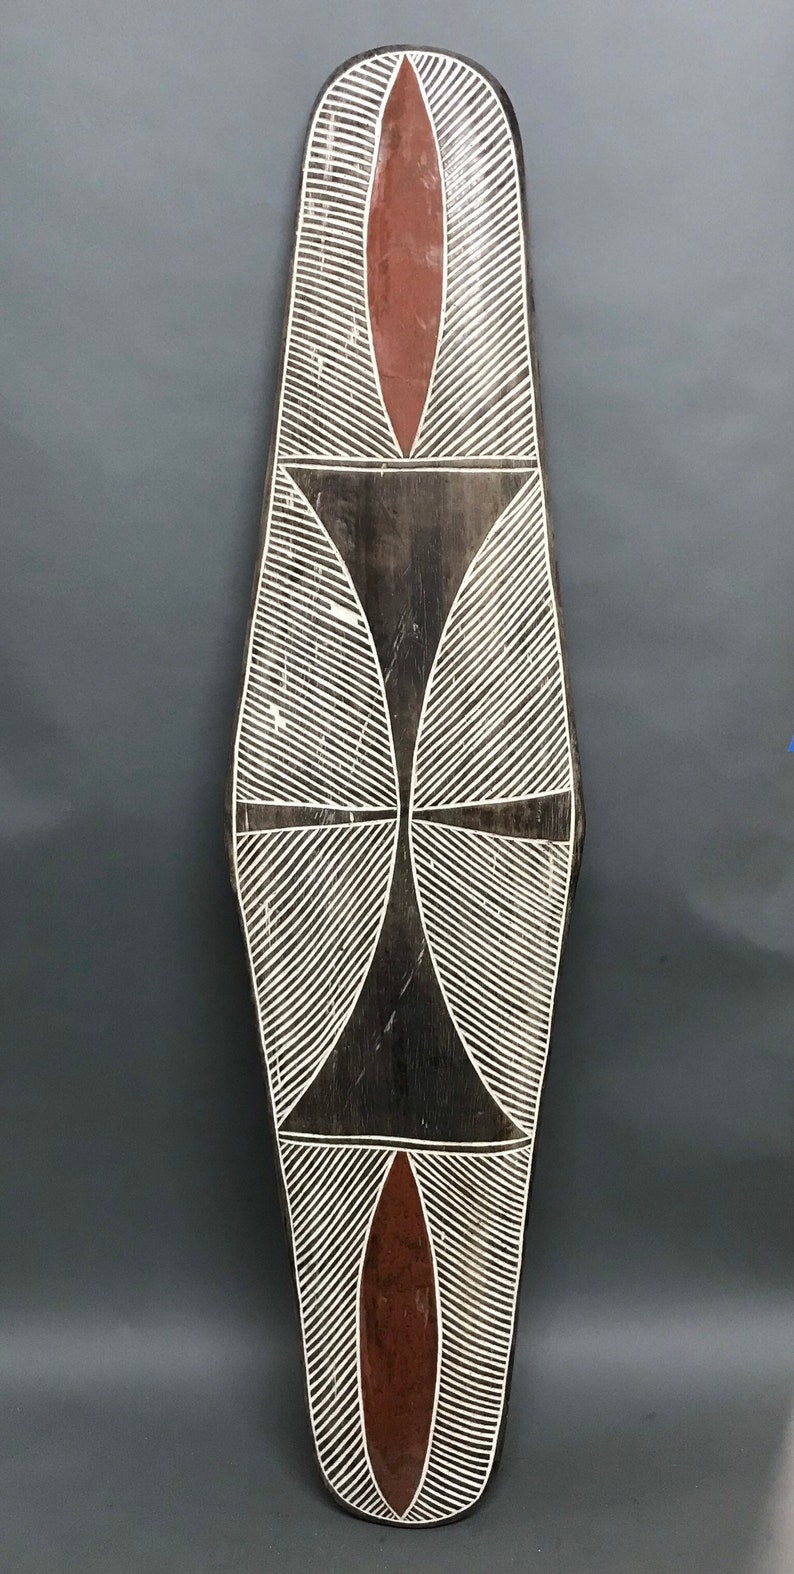 African Art Tribal Art Carved Wood Zulu Shield from South Africa